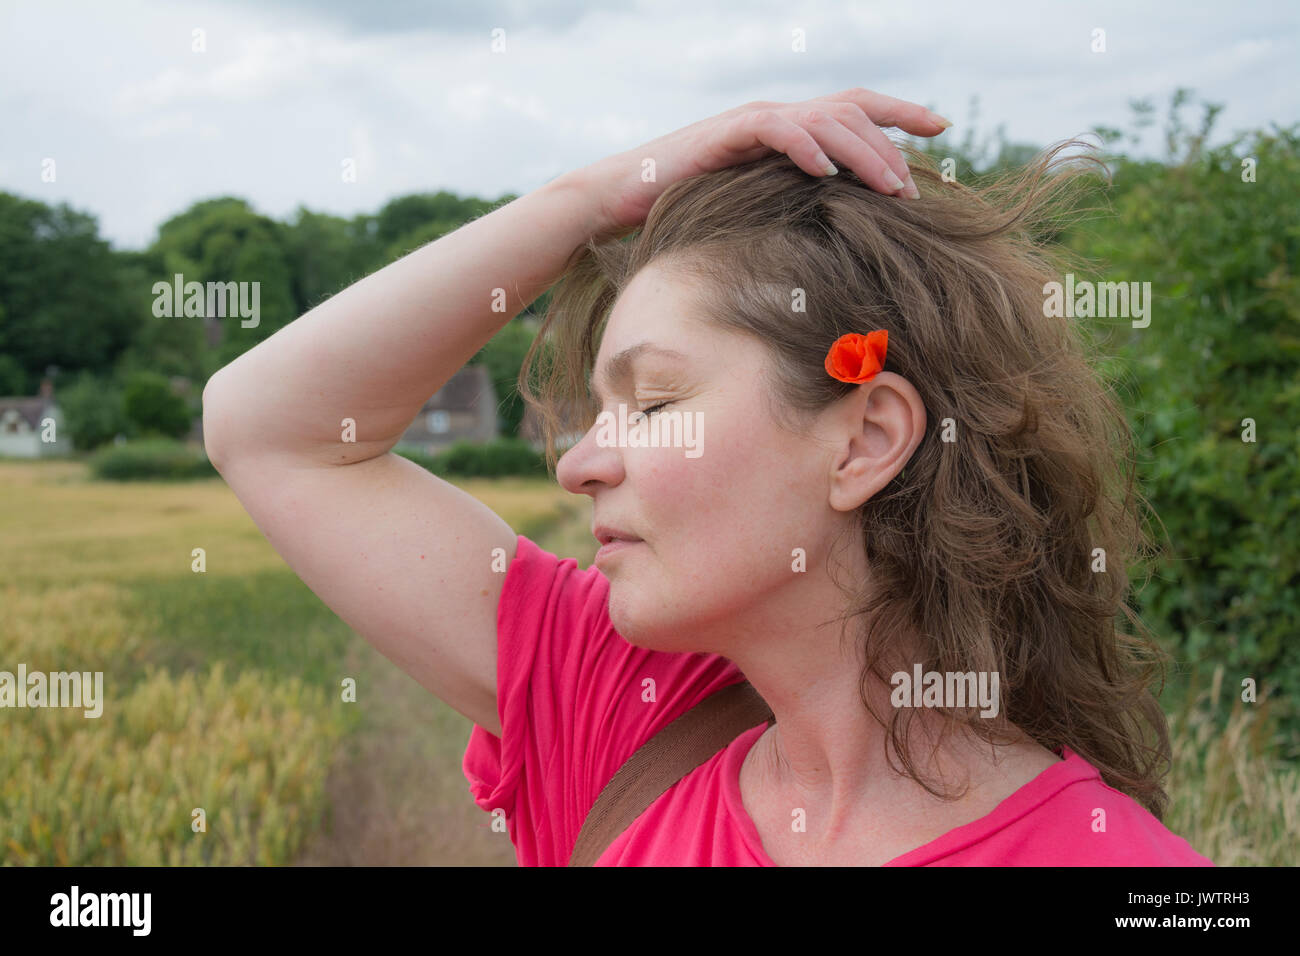 A woman in a pink top pulling her hair back to reveal a wild field poppy tucked behind her ear on a summer's day. UK - Stock Image